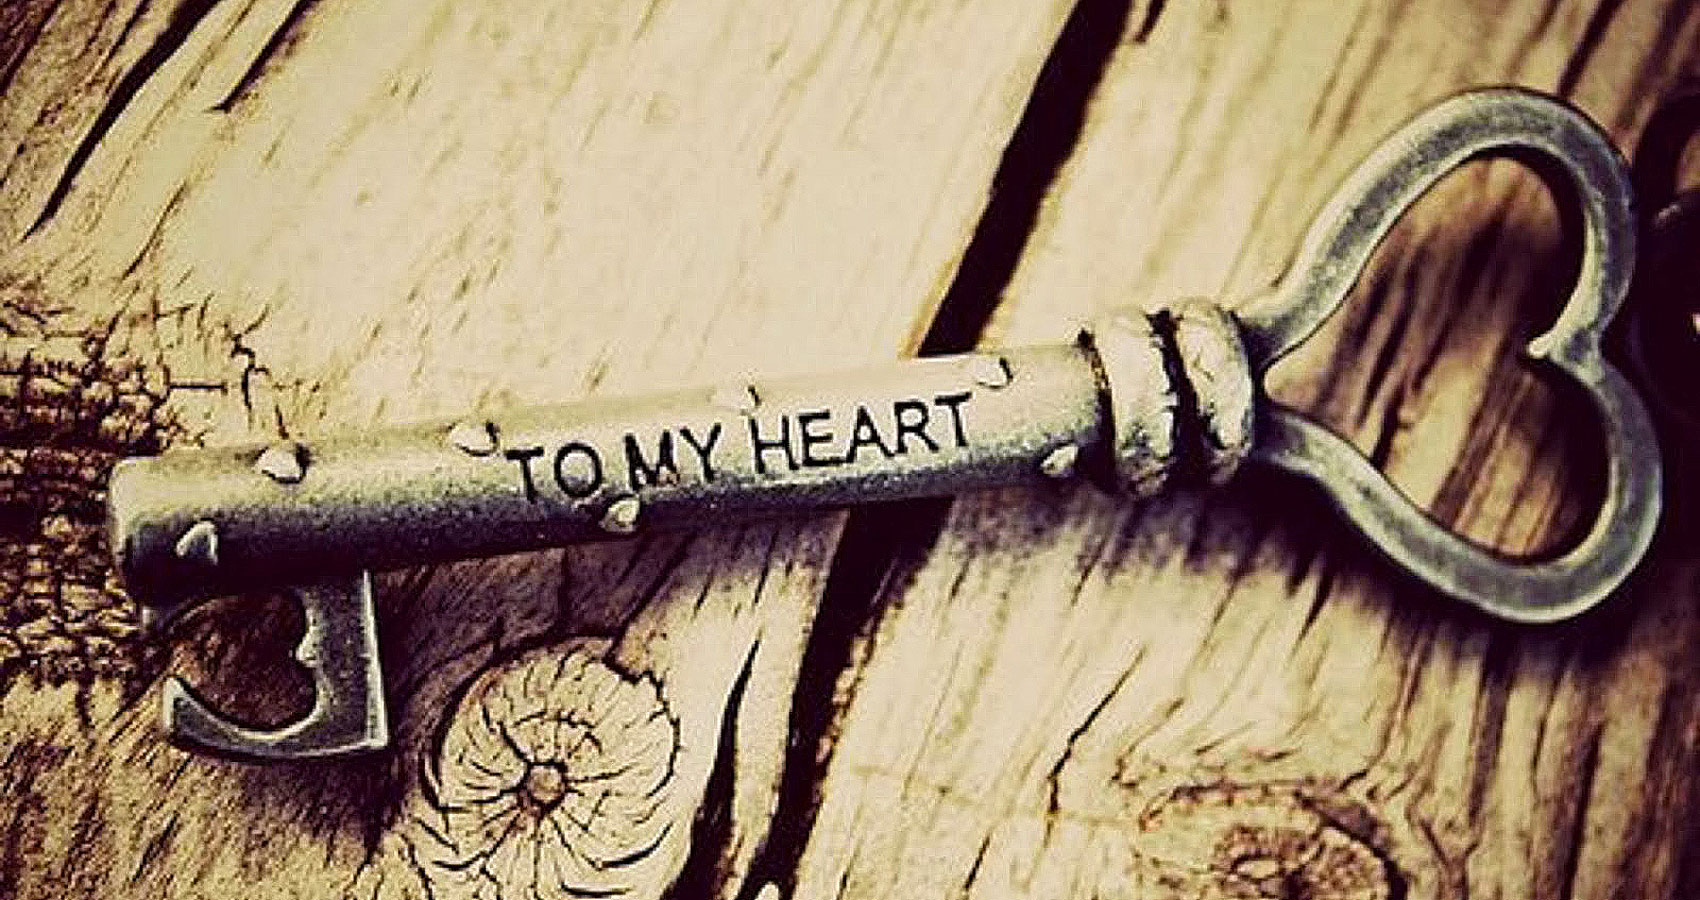 Key To My Heart by Selena G. at Spillwords.com